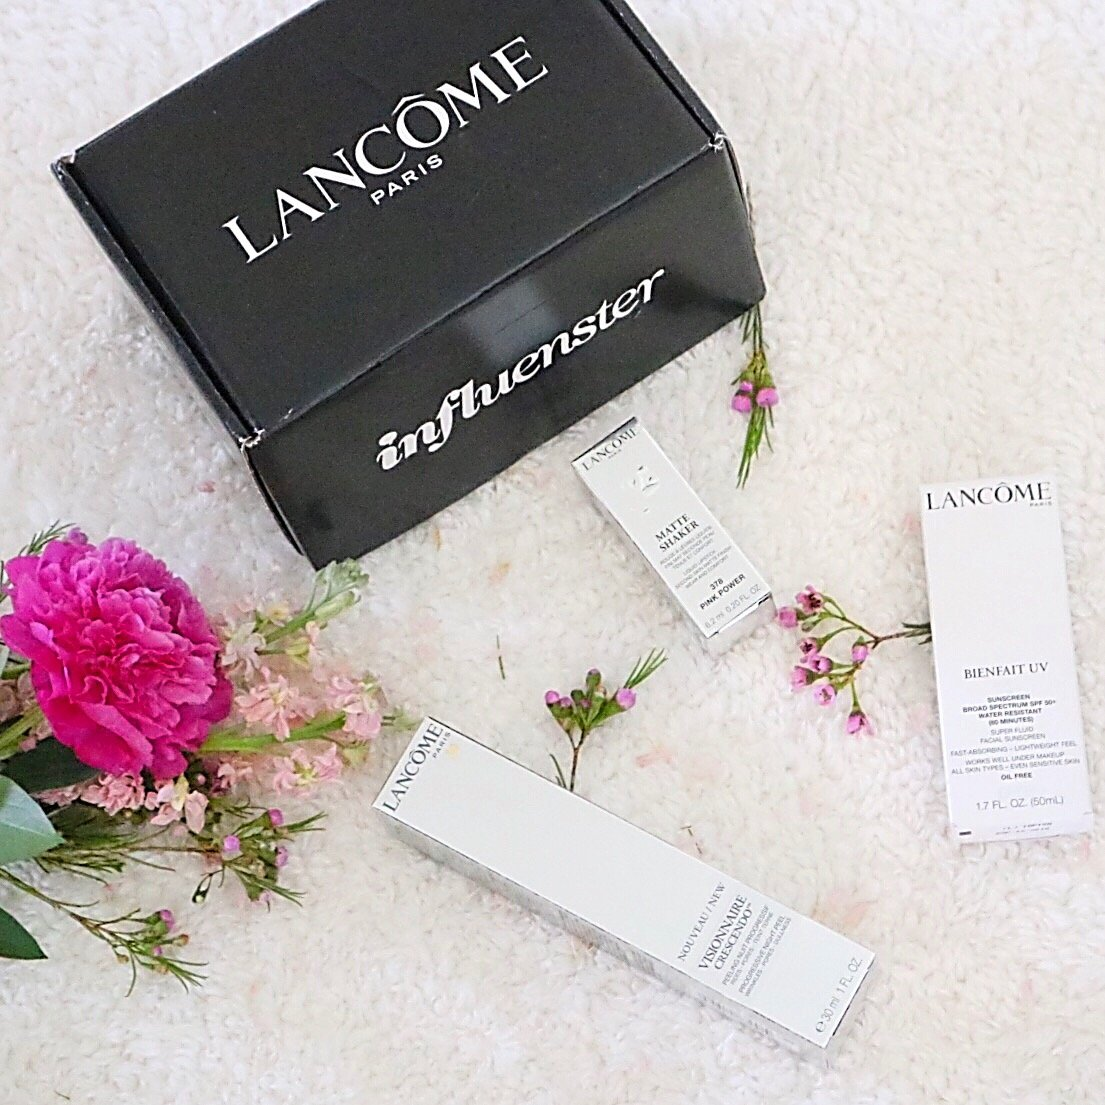 Review Lancôme Visionaire Cresendo Peel, Facial Peel, Beauty Review, Face peel products, Lancome matte lipstick, Lancome face sunscreen, Face peel tips